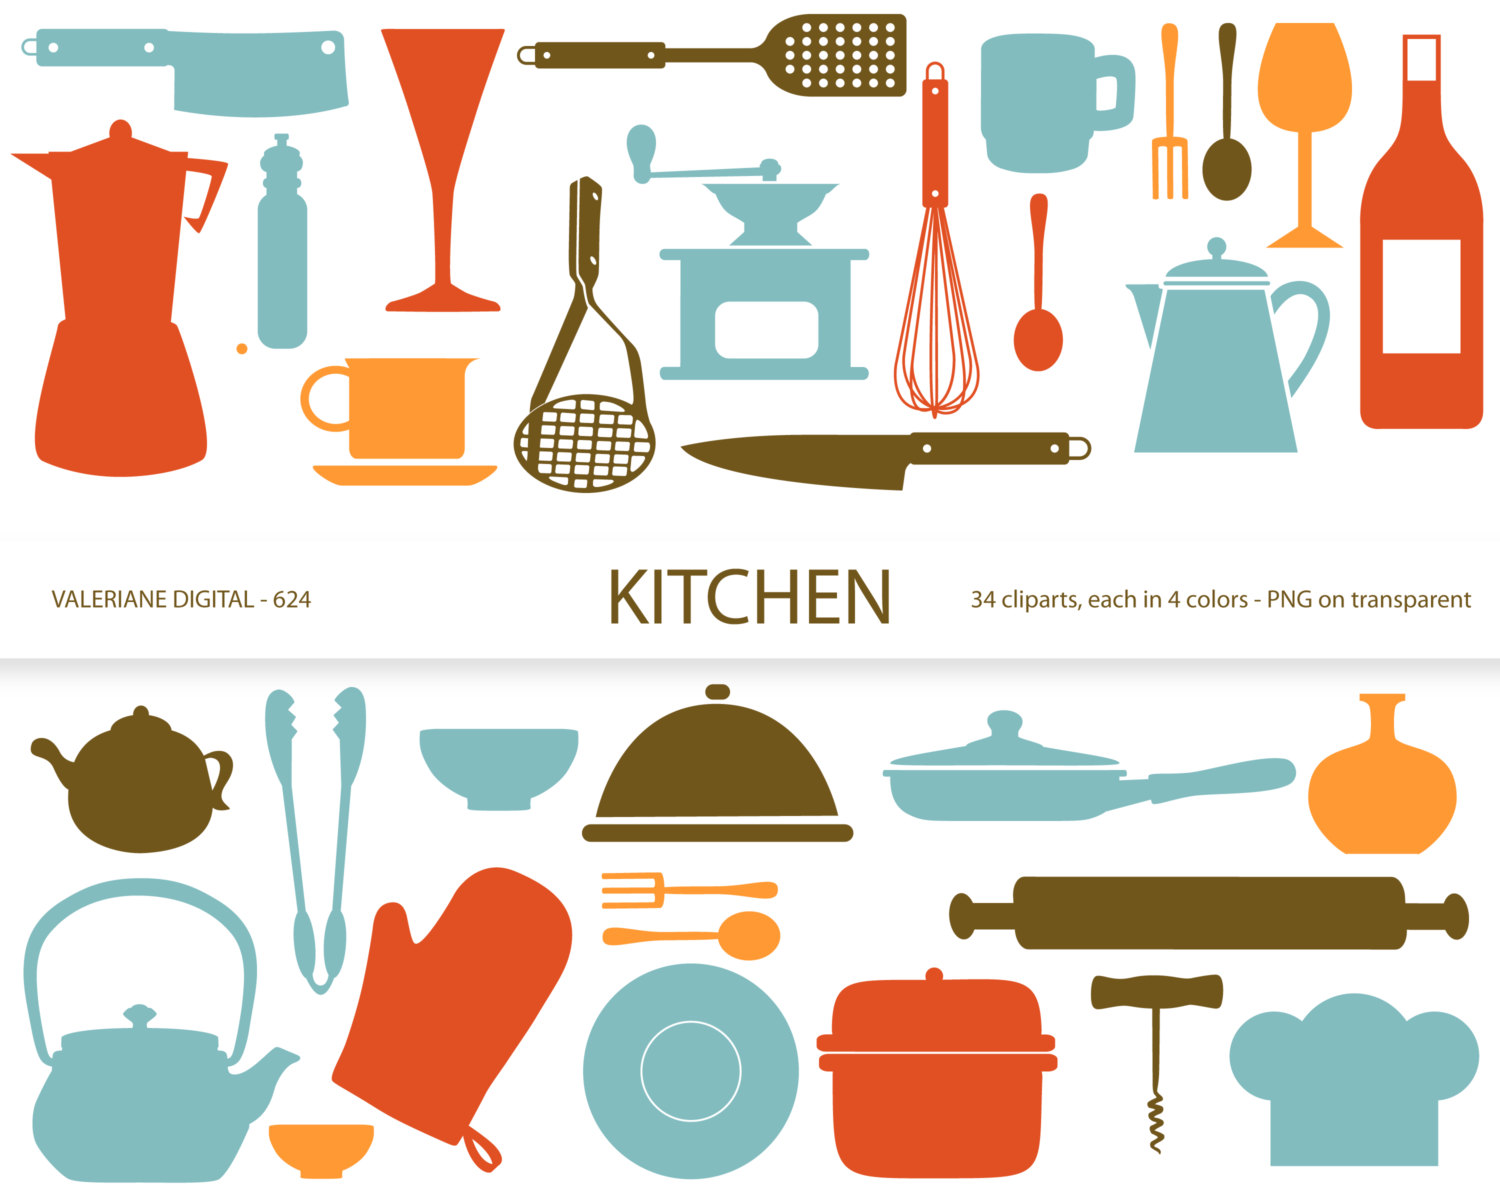 Kitchen Clipart S Retro Kitchen Utensils By Valerianedigital